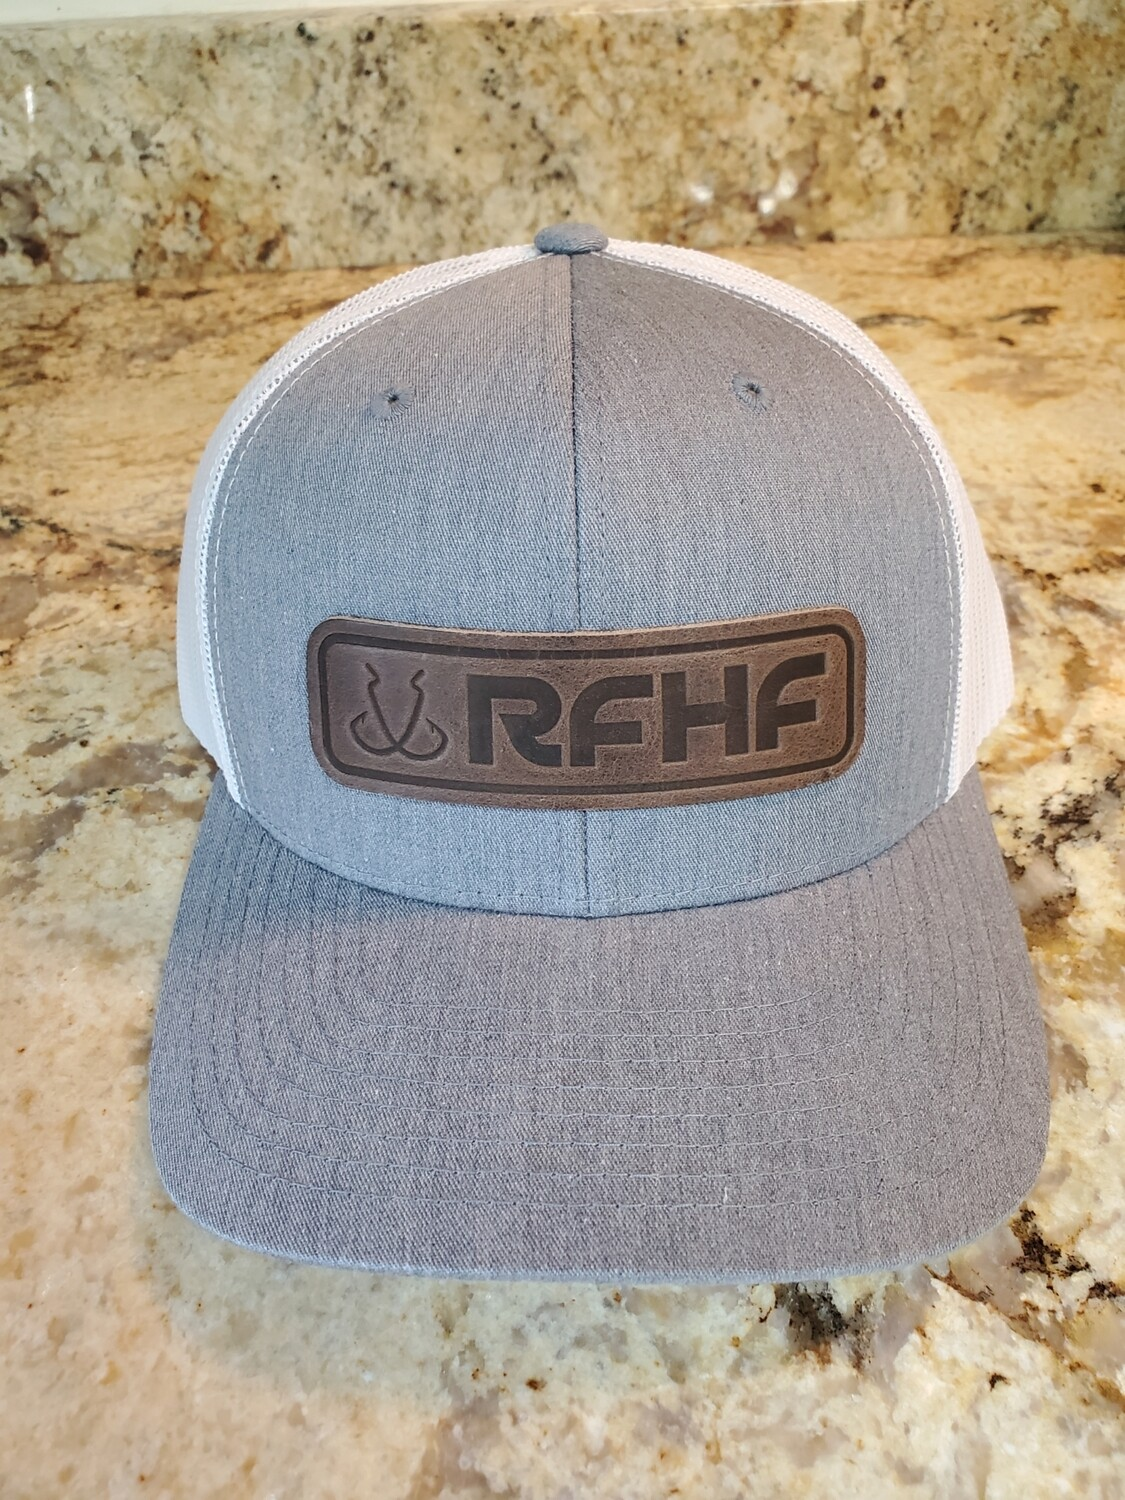 Double hook logo/leather patch on heather grey_white